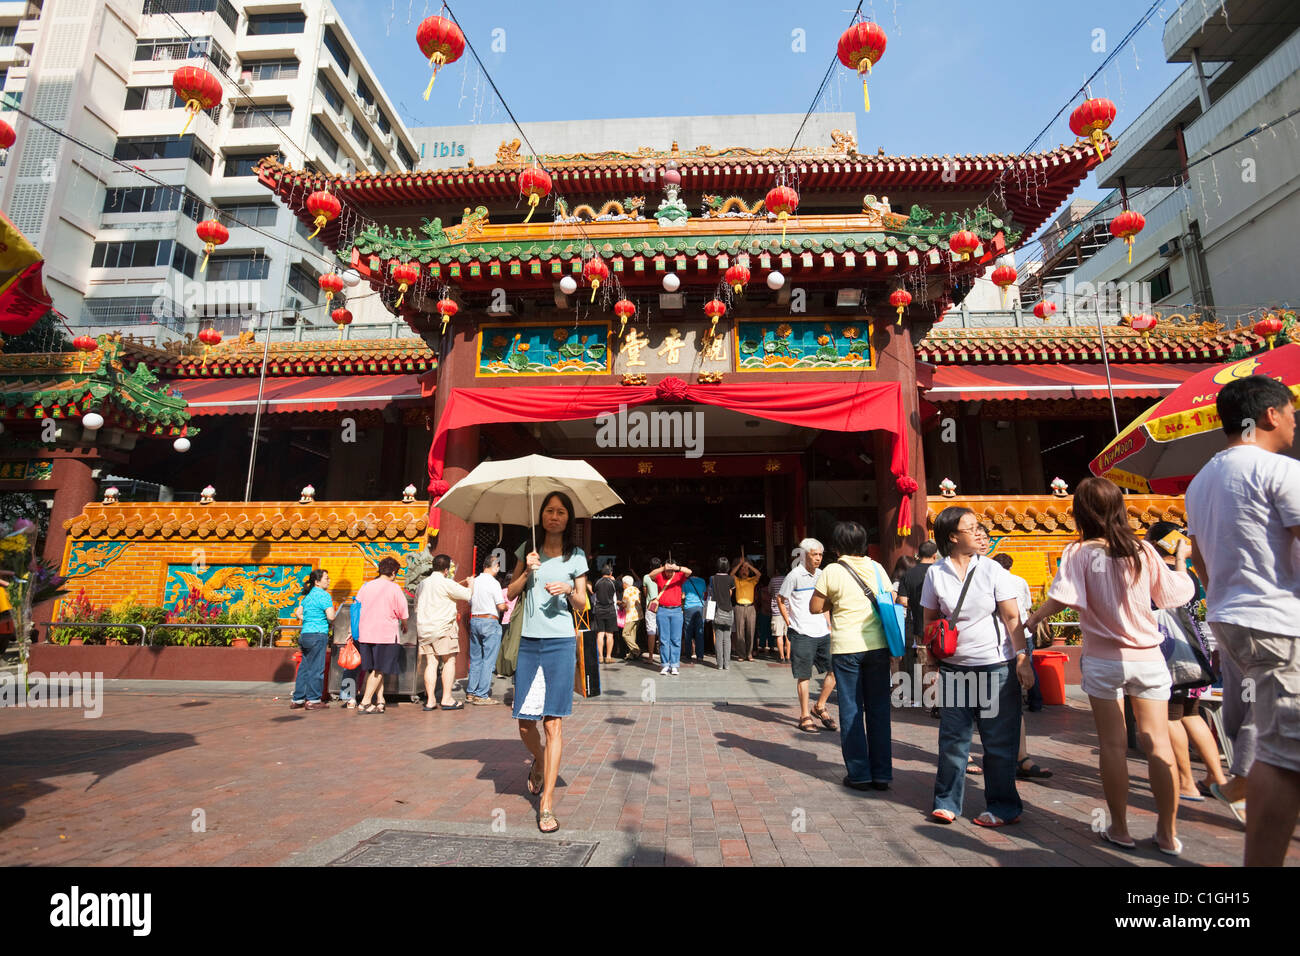 The Kwan Im Thong Hood Cho Temple.  Bugis, Singapore - Stock Image